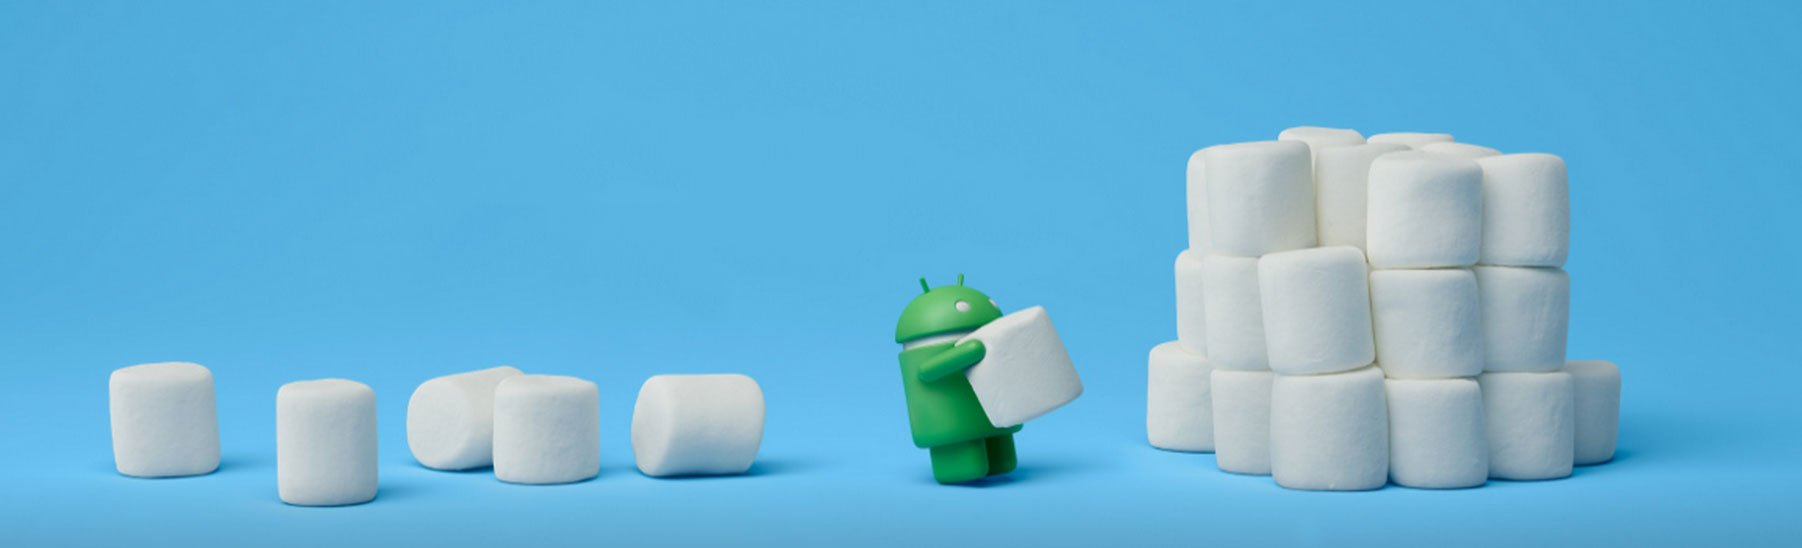 Android 6.0 Marshmallow change son logo debug